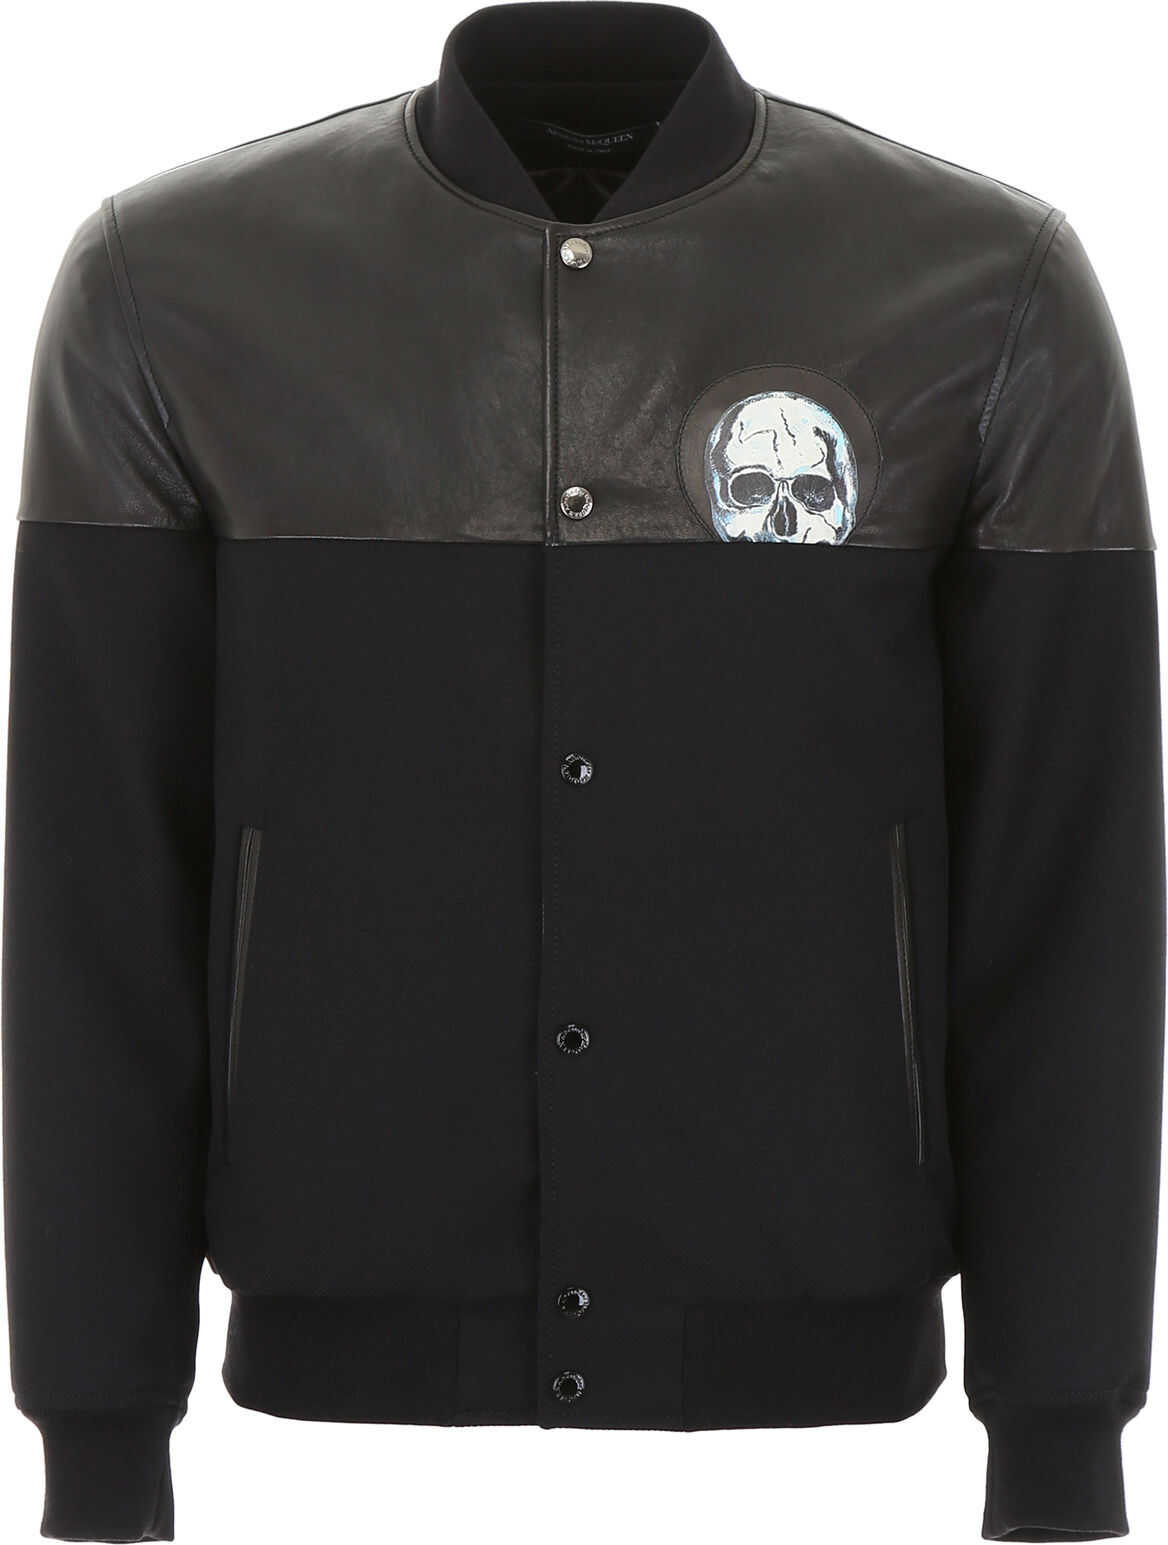 Alexander McQueen Bomber Jacket With Leather Details BLACK BLACK WHITE